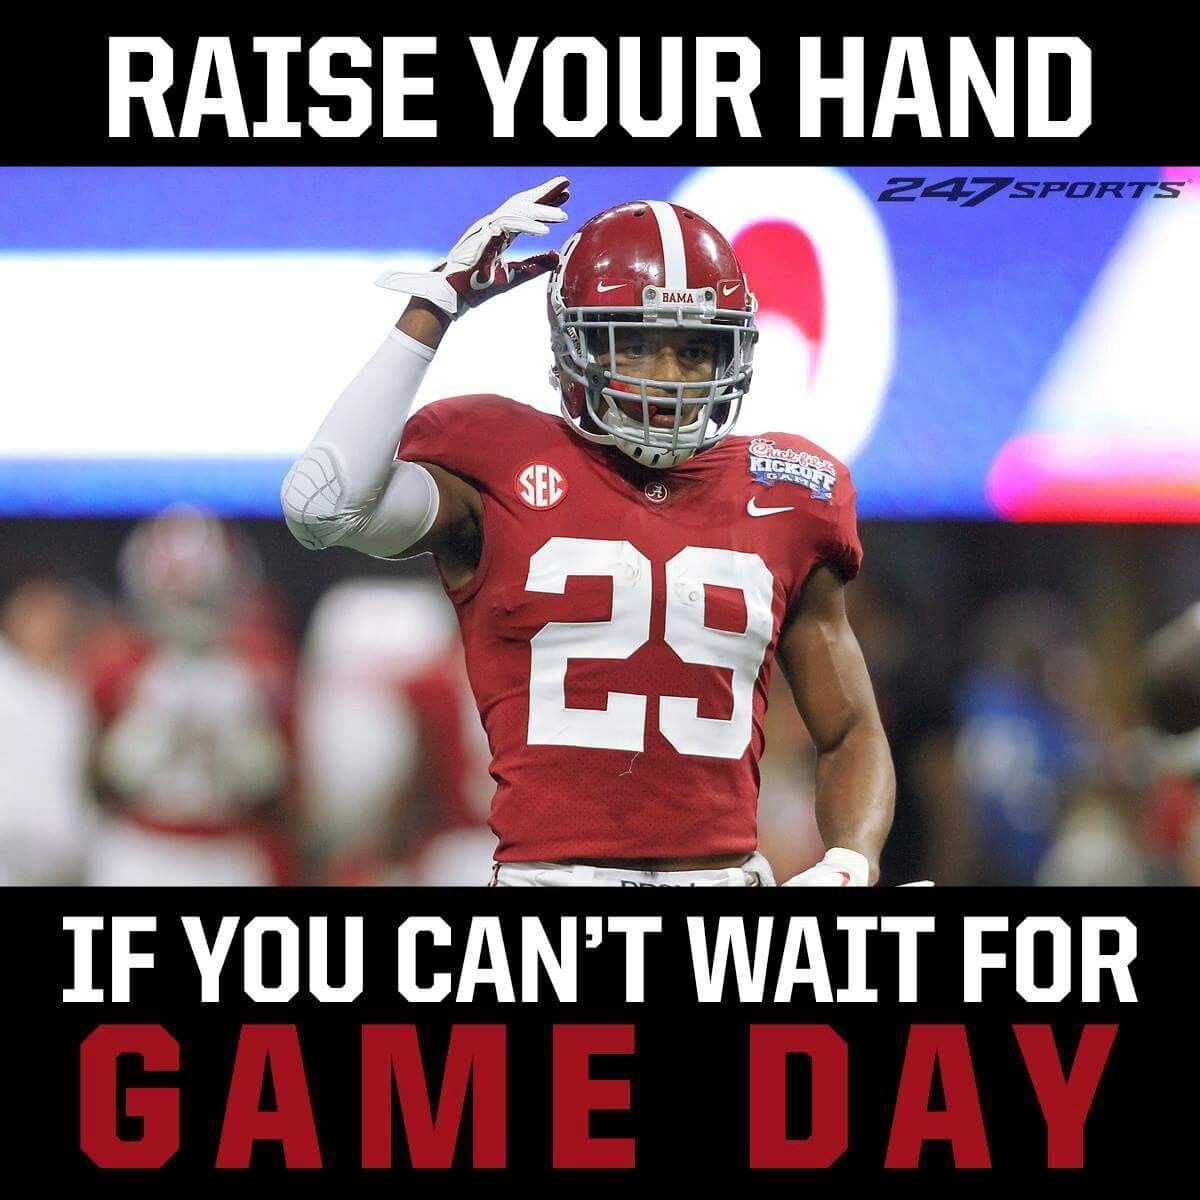 Raise Your Hand If You Can T Wait For Game Day Alabama Crimson Tide Alabama Crimson Tide Football Alabama Football Team